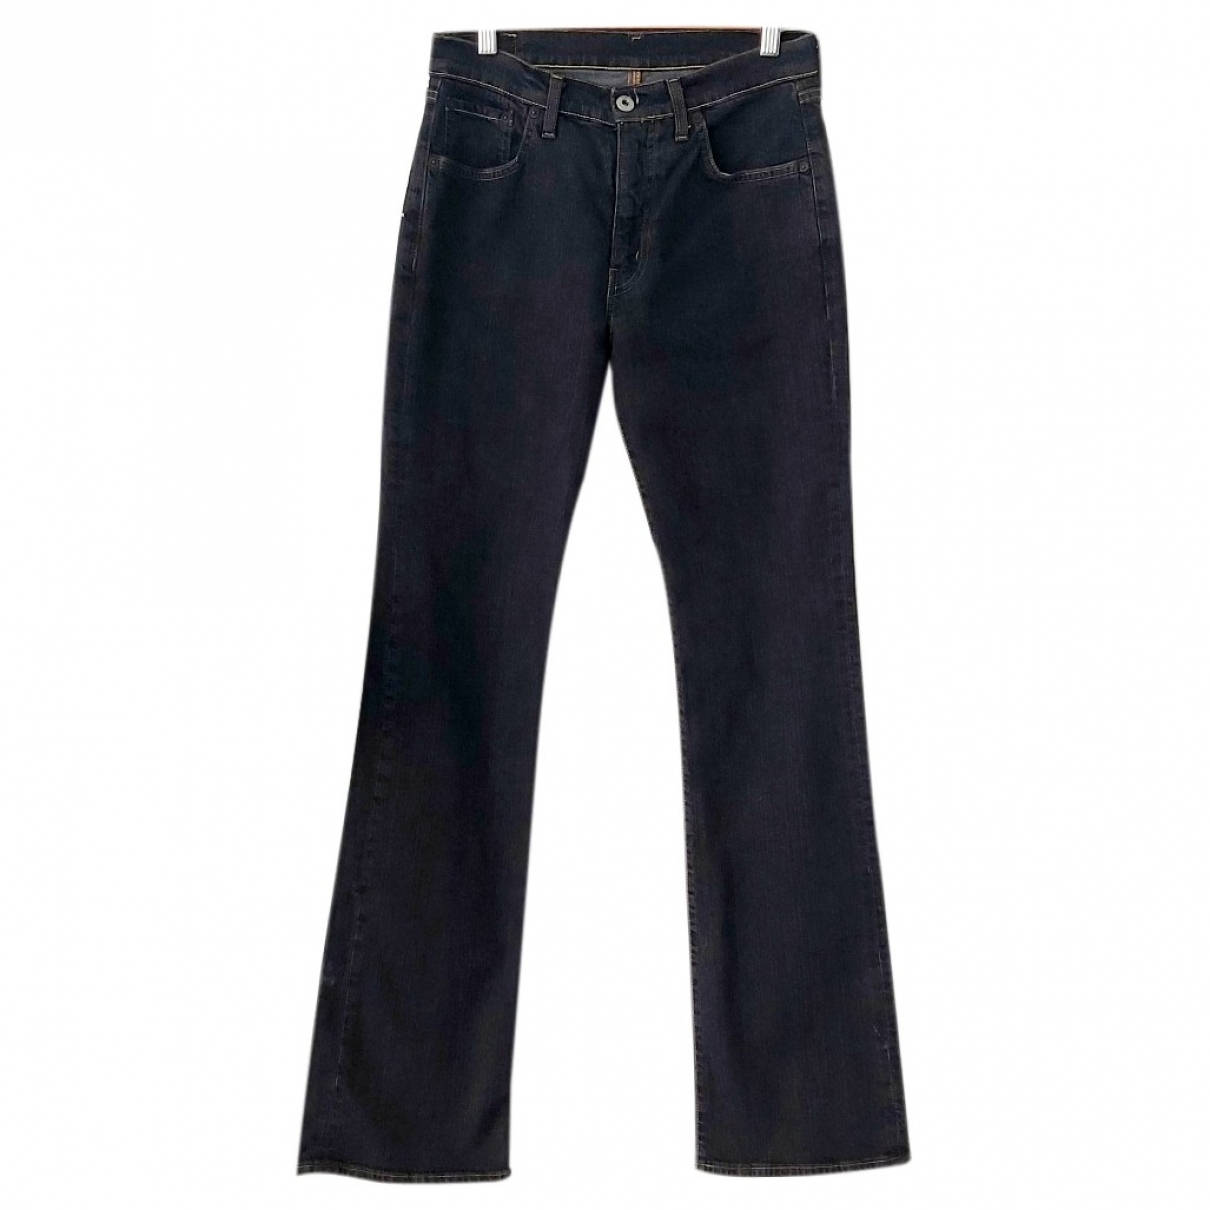 Non Signé / Unsigned \N Anthracite Denim - Jeans Jeans for Women 31 US